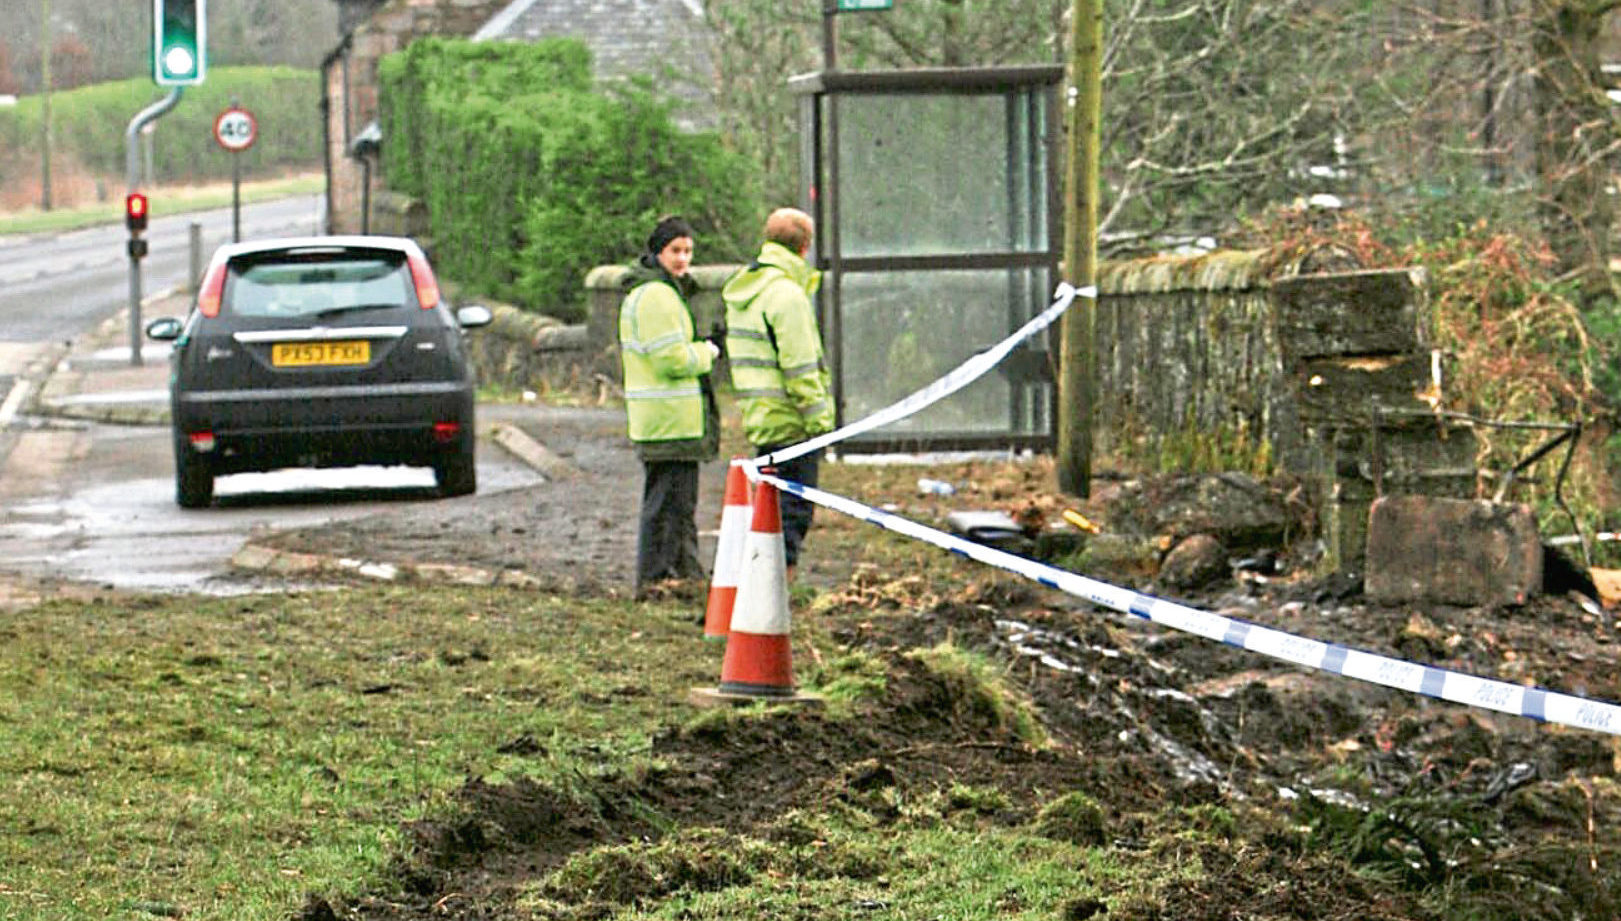 The scene of the fatal crash on the A977 at the village of Drum.